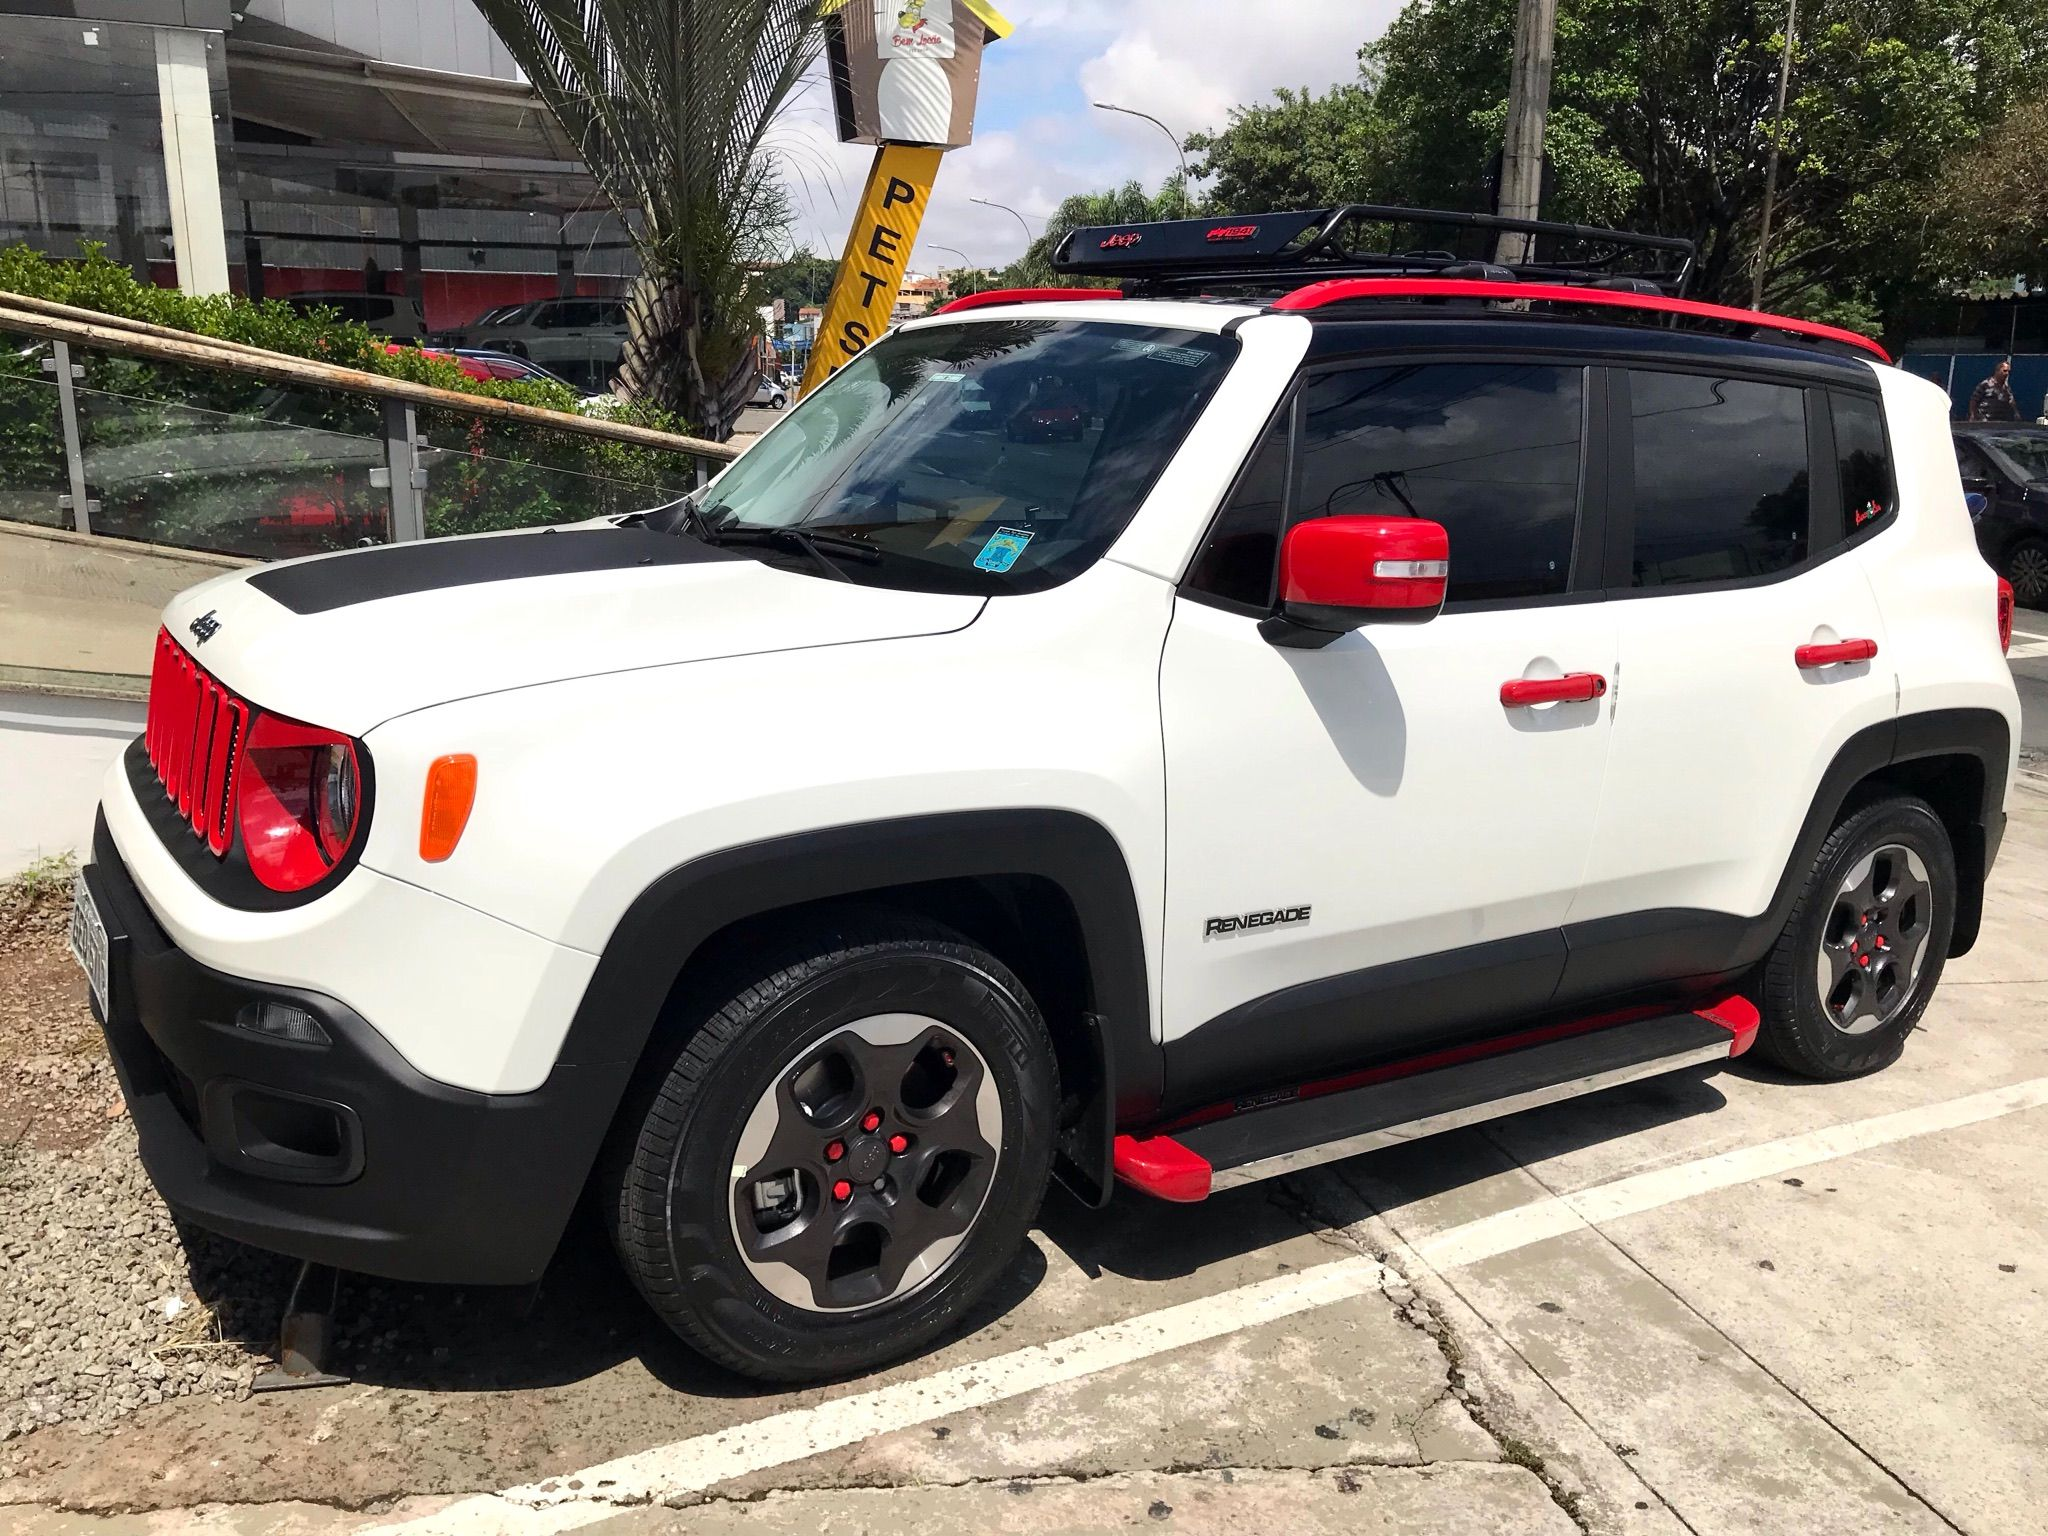 Pin By Jordan On Whip Jeep Renegade Jeep Renegade Trailhawk